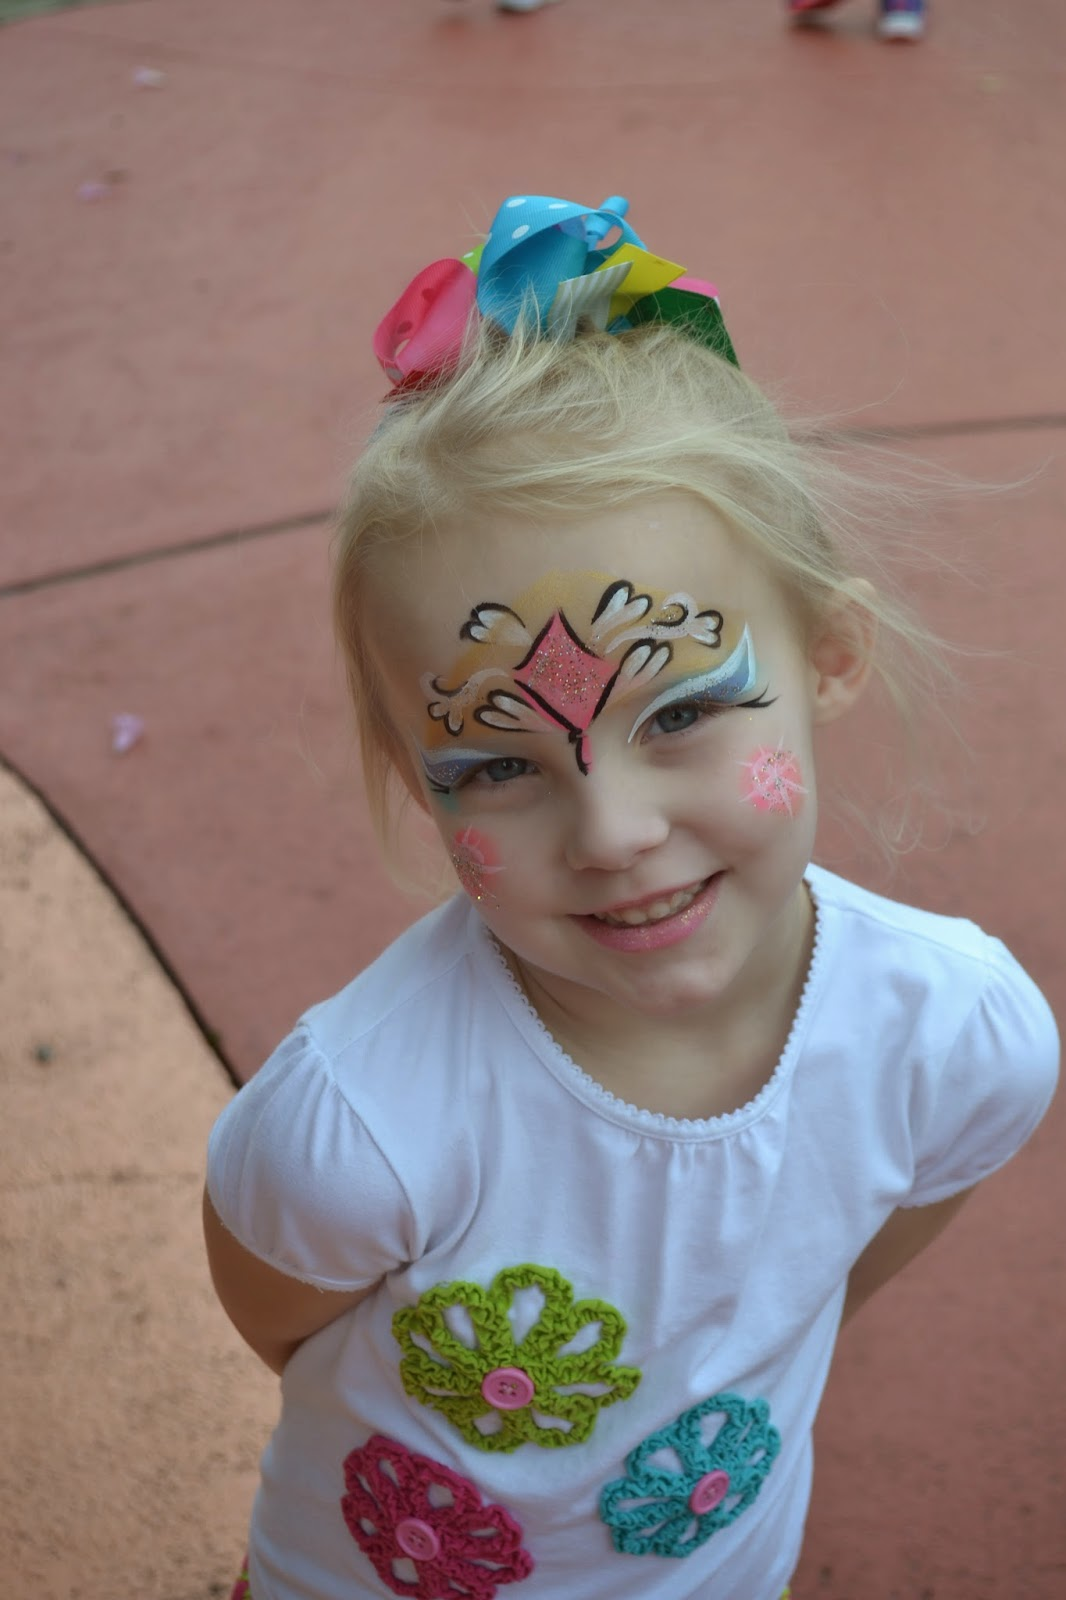 Had her face painted at Universal - Islands of Adventure